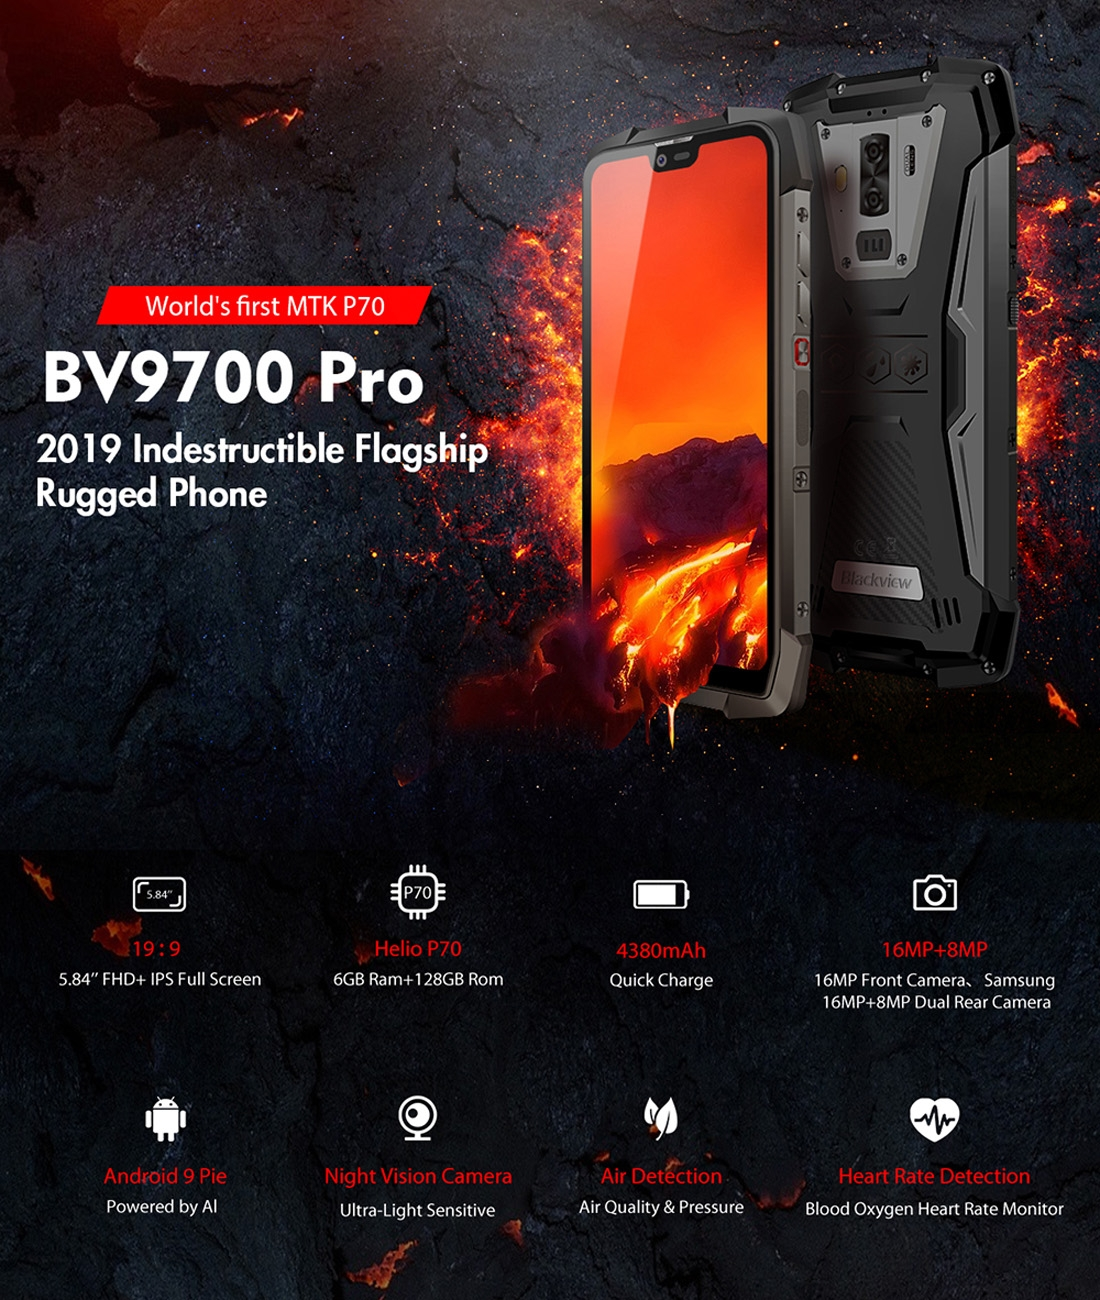 Blackview BV9700 Pro, 6GB/128GB, Android 9 0, VOC detection, Helio p70 AI,  Samsung cameras, dual 4G sims, Night Vision camera module